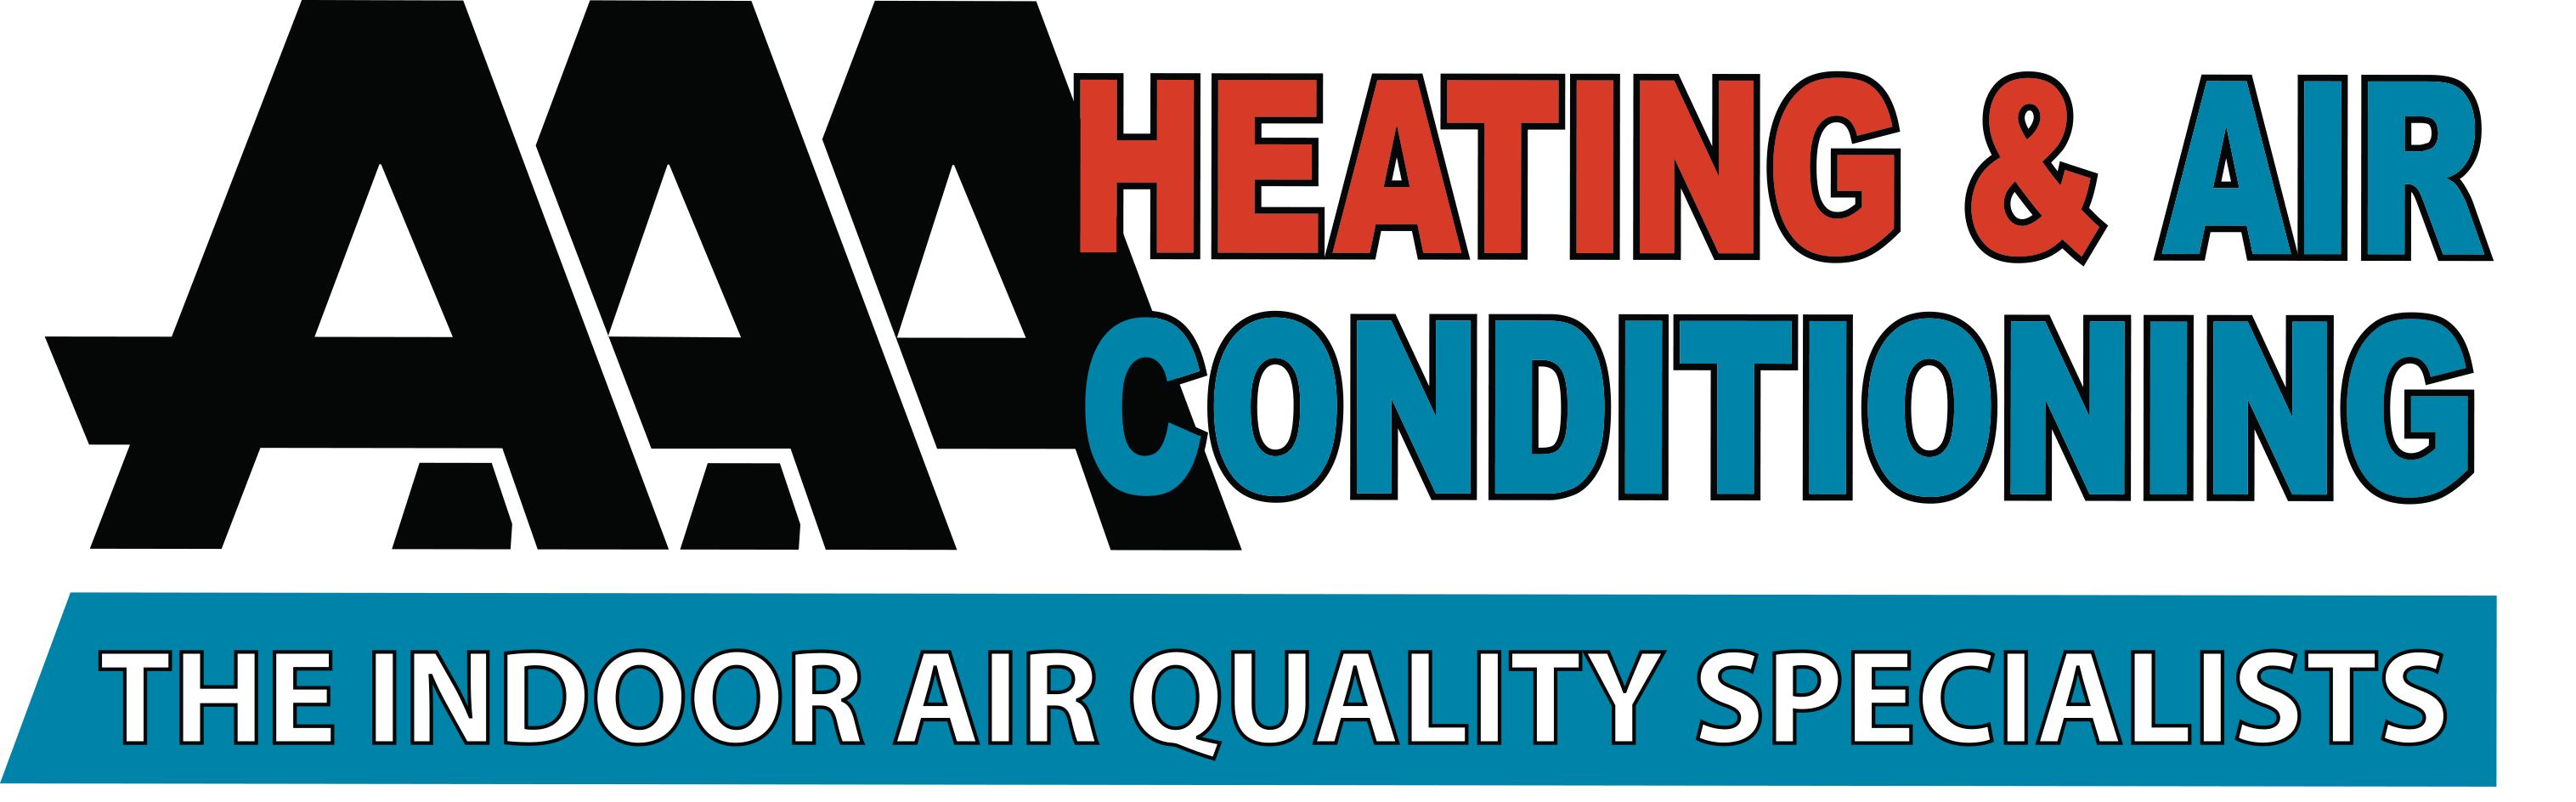 Contact Us - AAA Heating & Air Conditioning | HVAC in Kent, WA